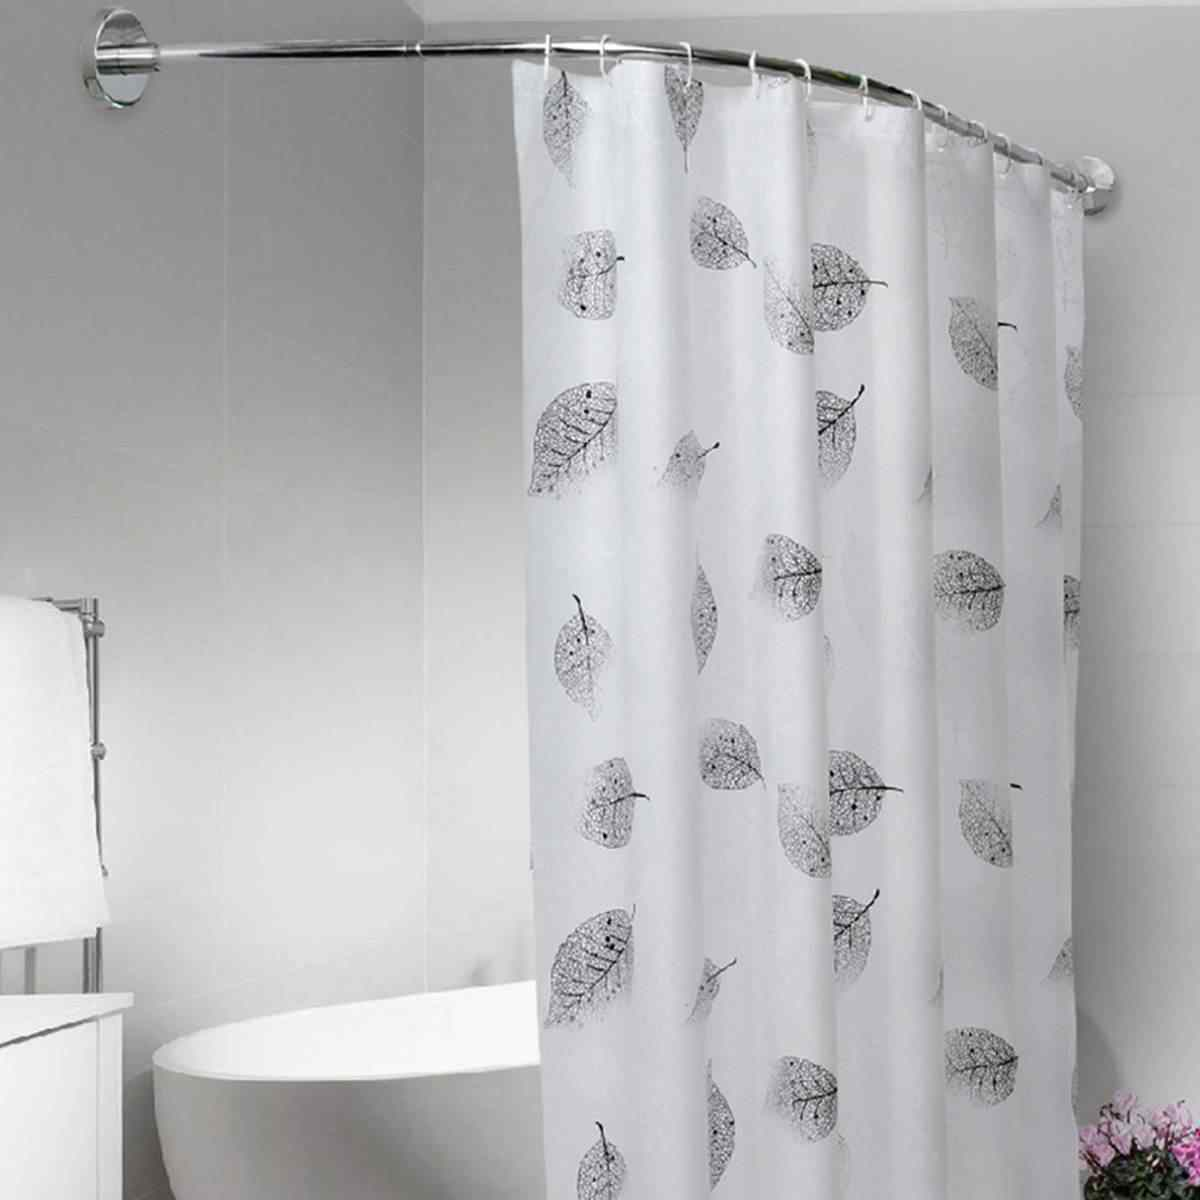 Expandable Curved Shower Curtain Rod 31 47inch Bath Tub